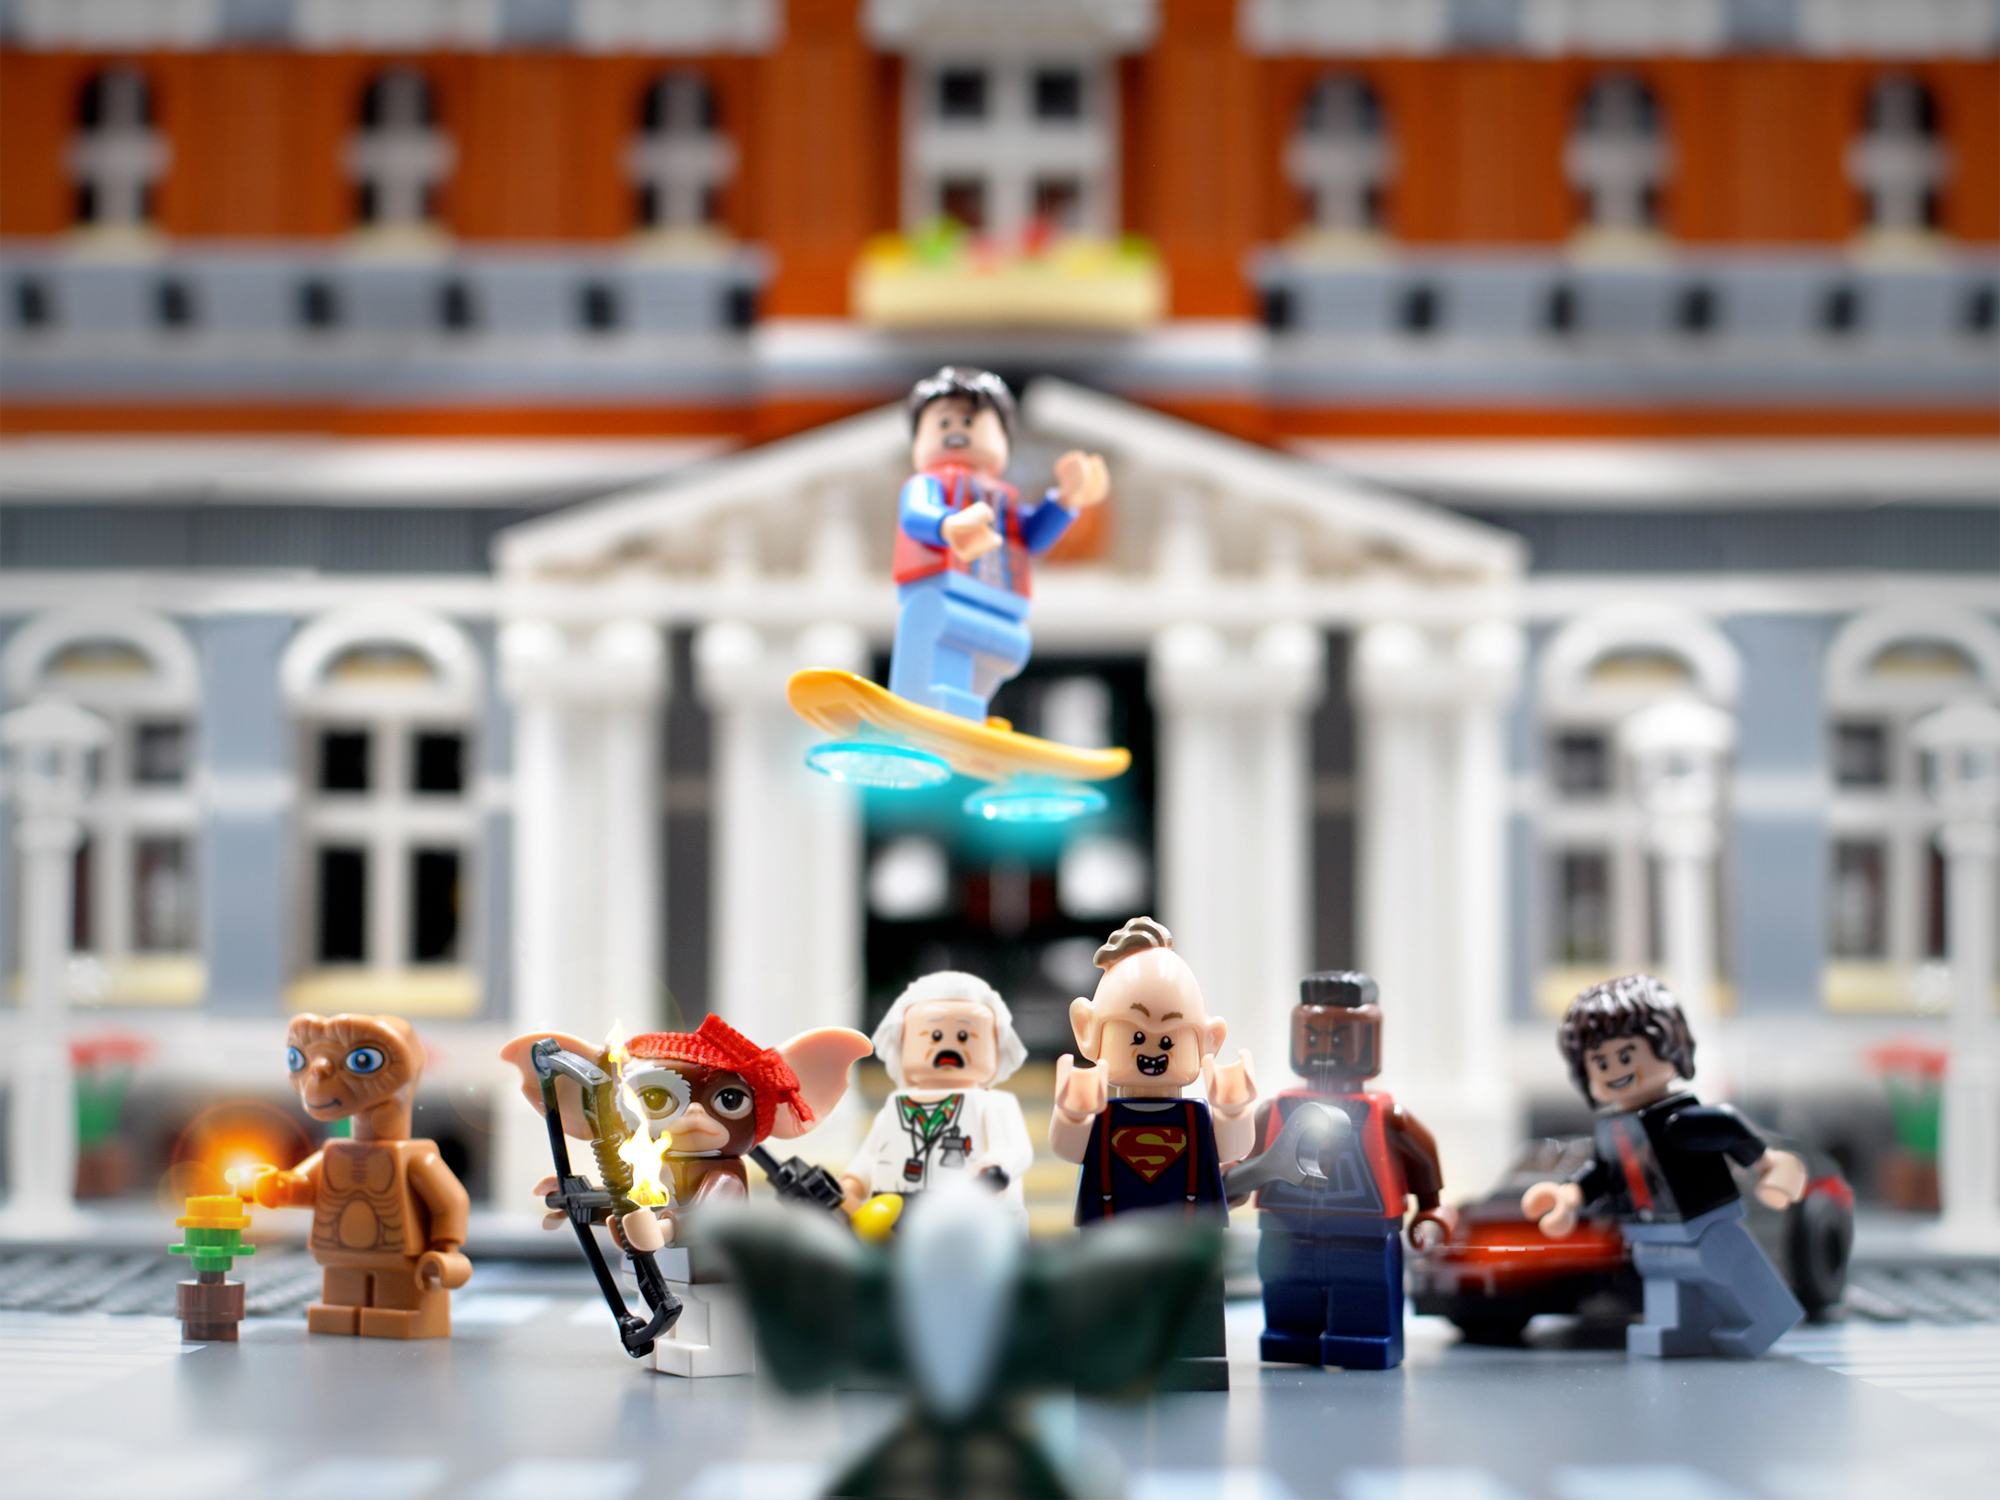 Tribute to the '80s in Lego